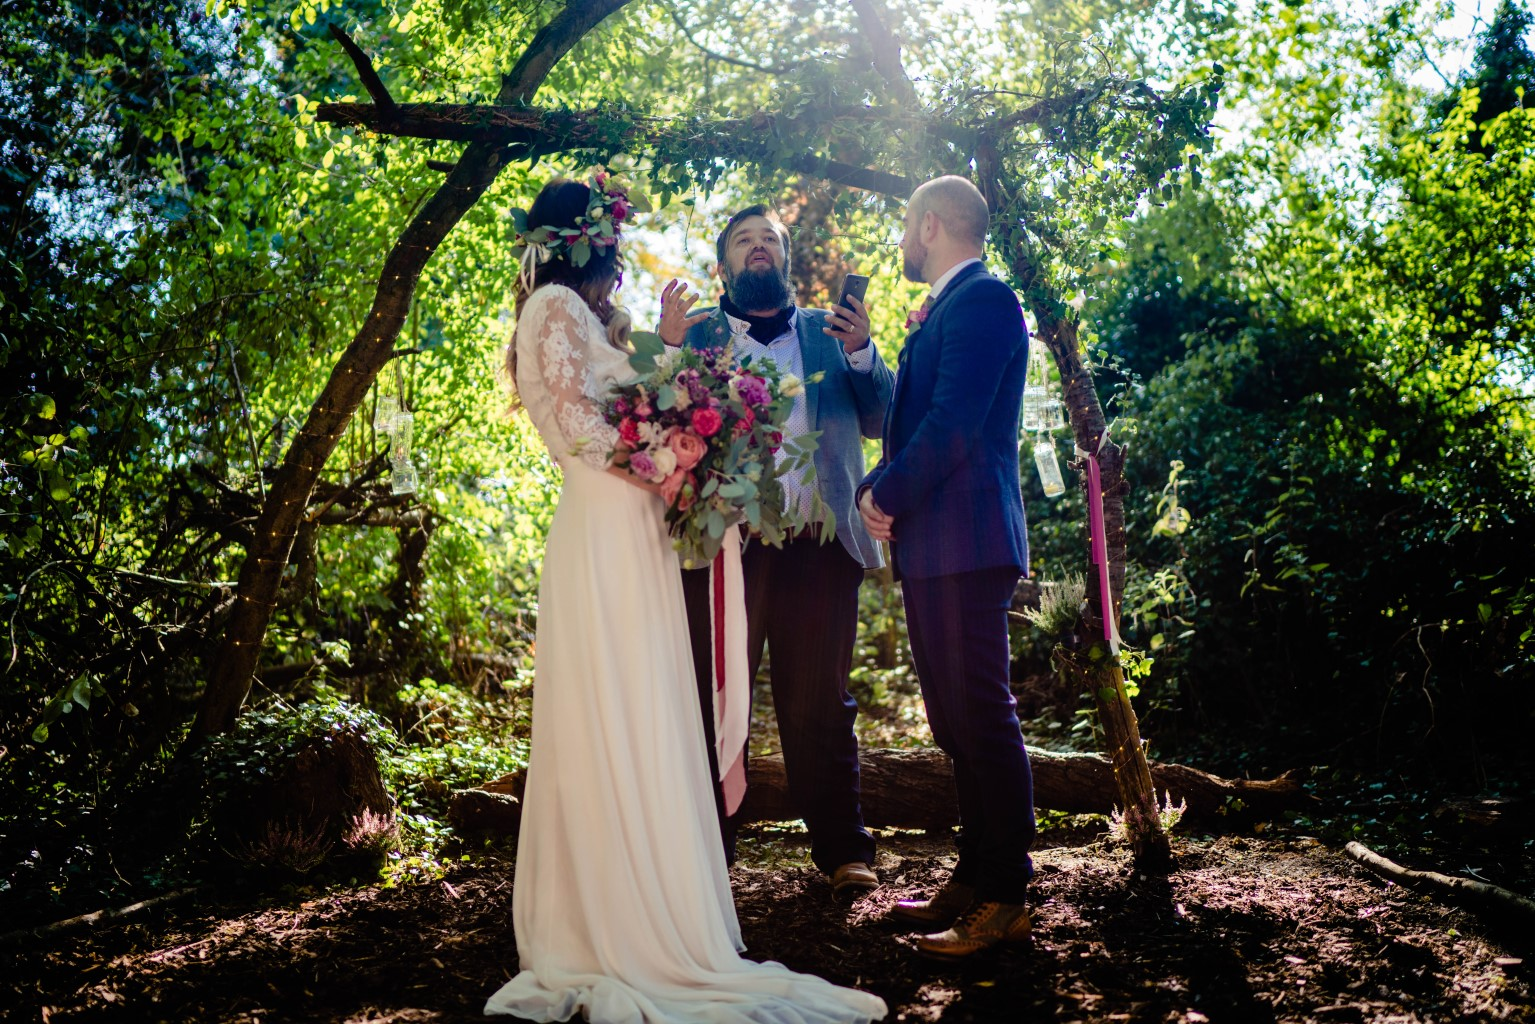 Vicki Clayson Photography- Bohemian Woodland Wedding- Unconventional Wedding- Alternative Wedding- Outdoor Wedding- Handfasting- Unique Wedding